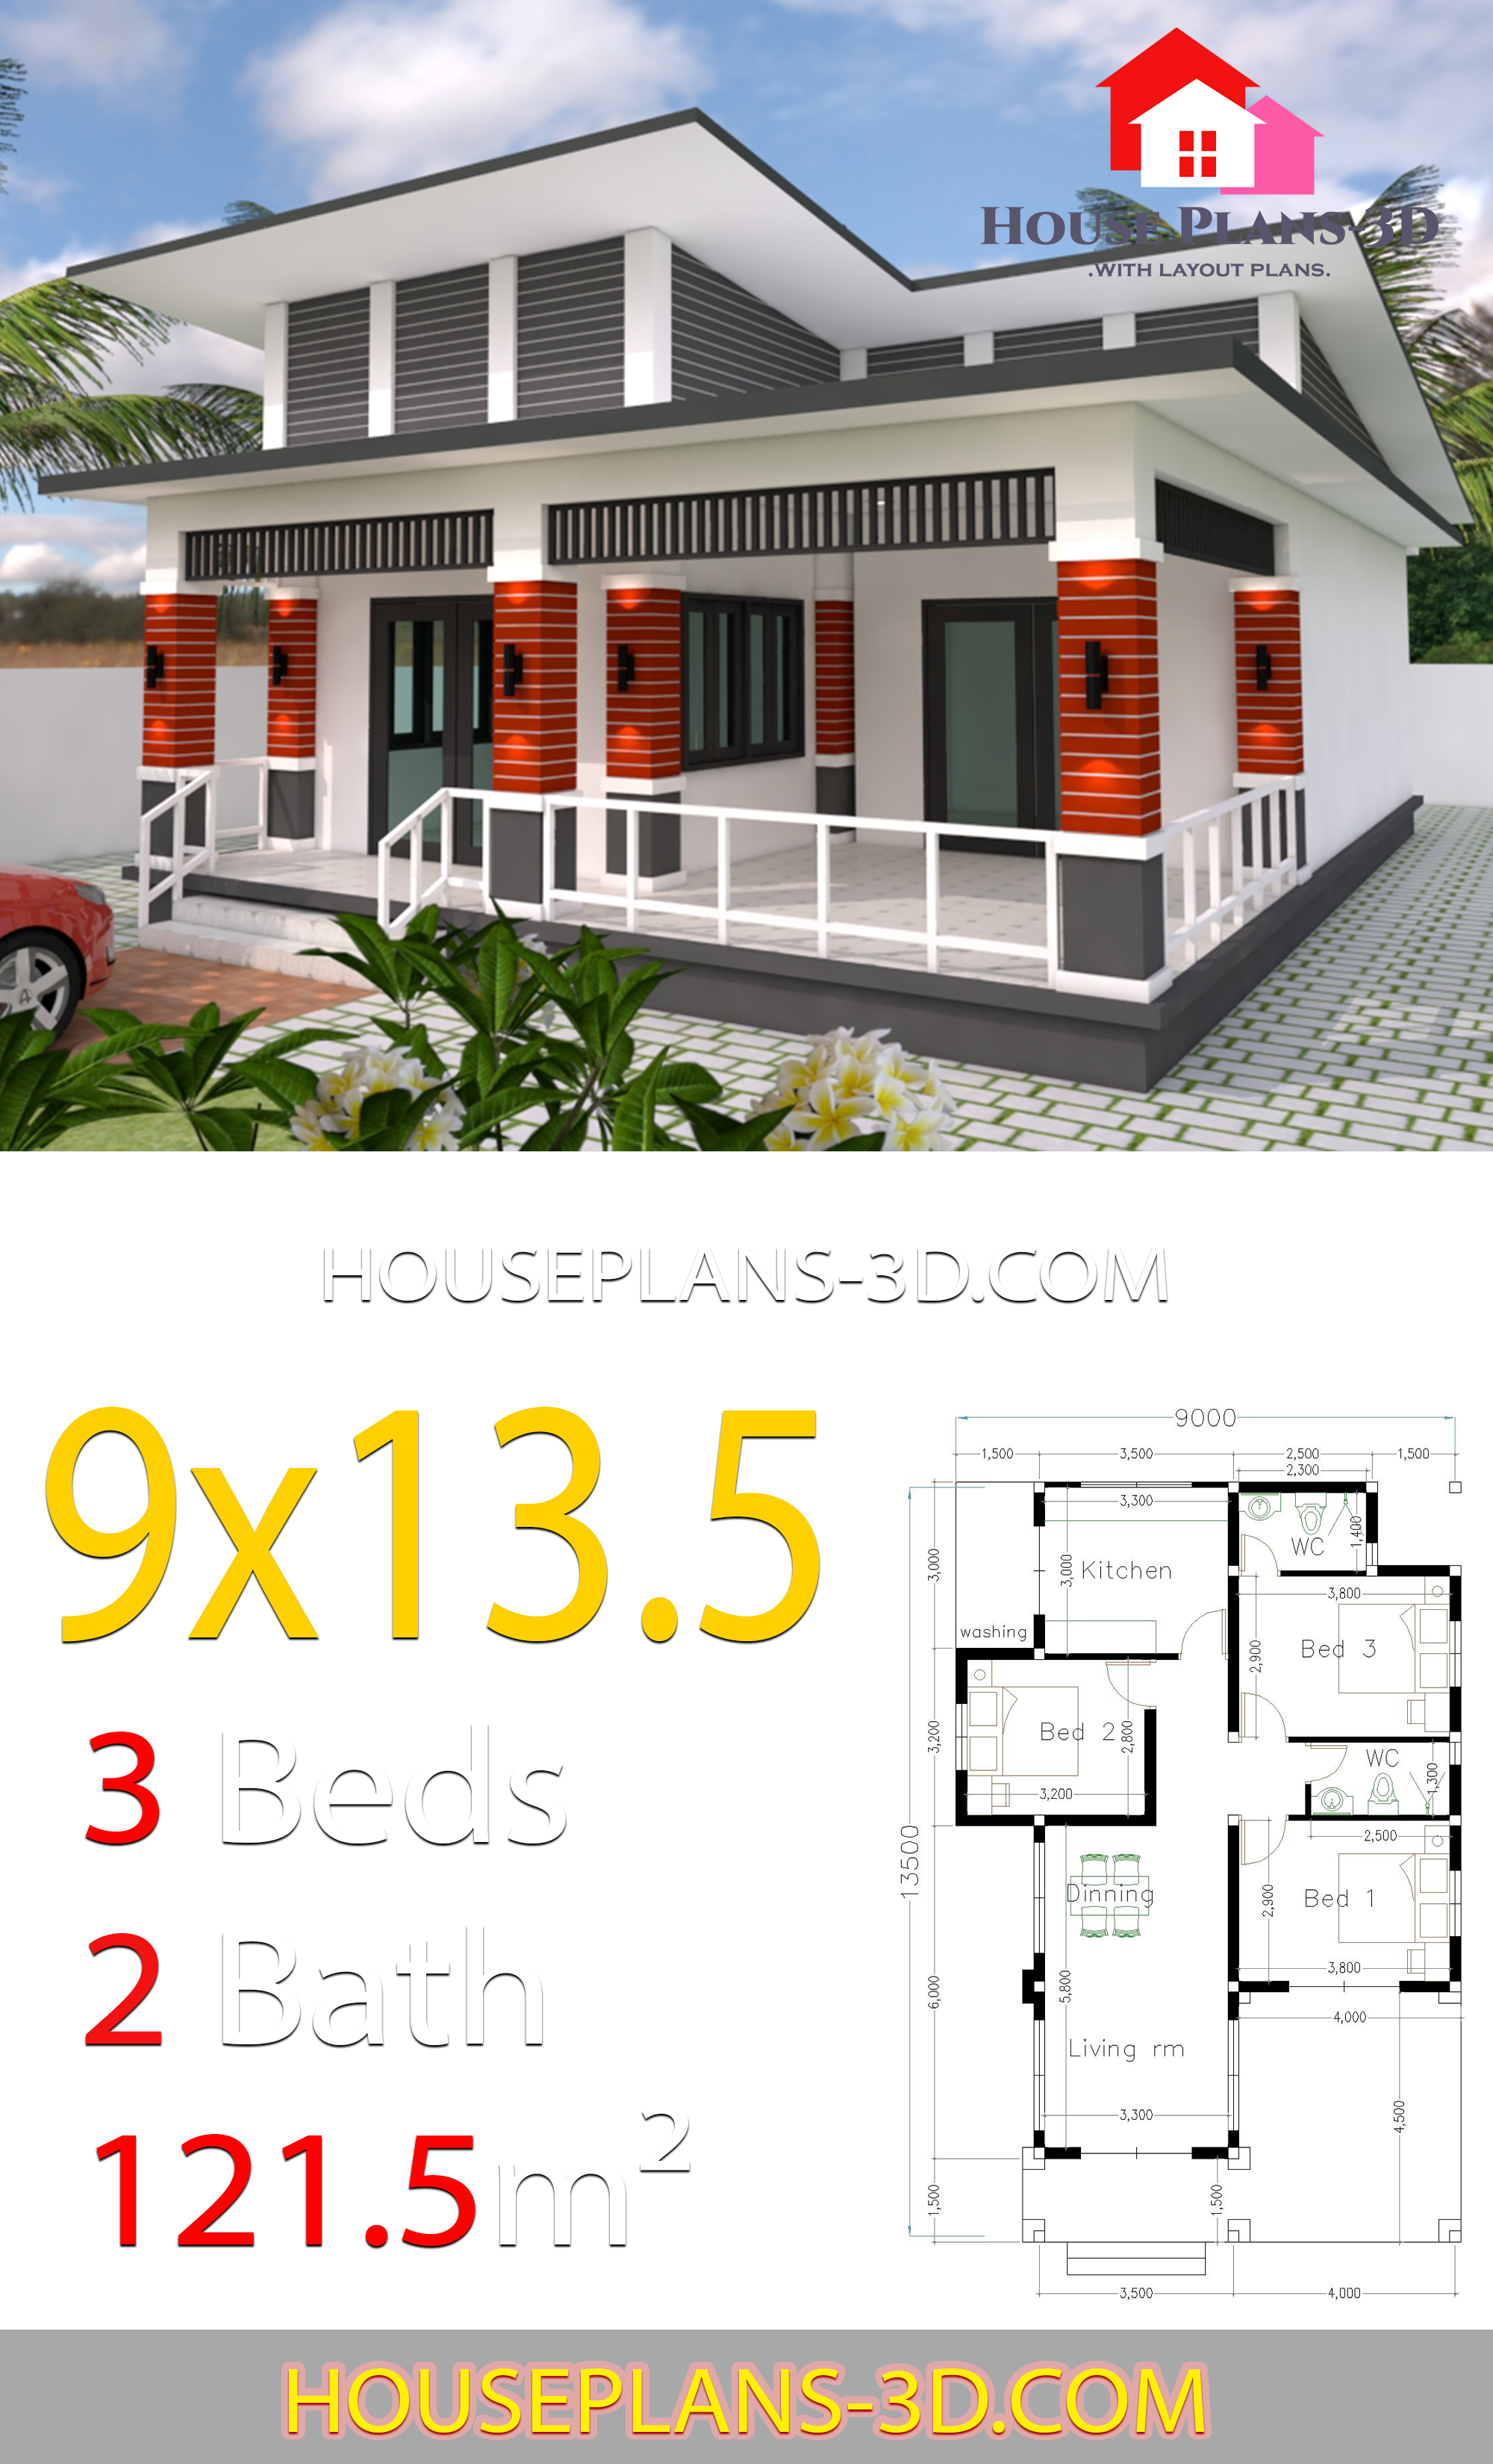 My 3d Room Design: House Design 9x13.5 With 3 Bedrooms Slop Roof